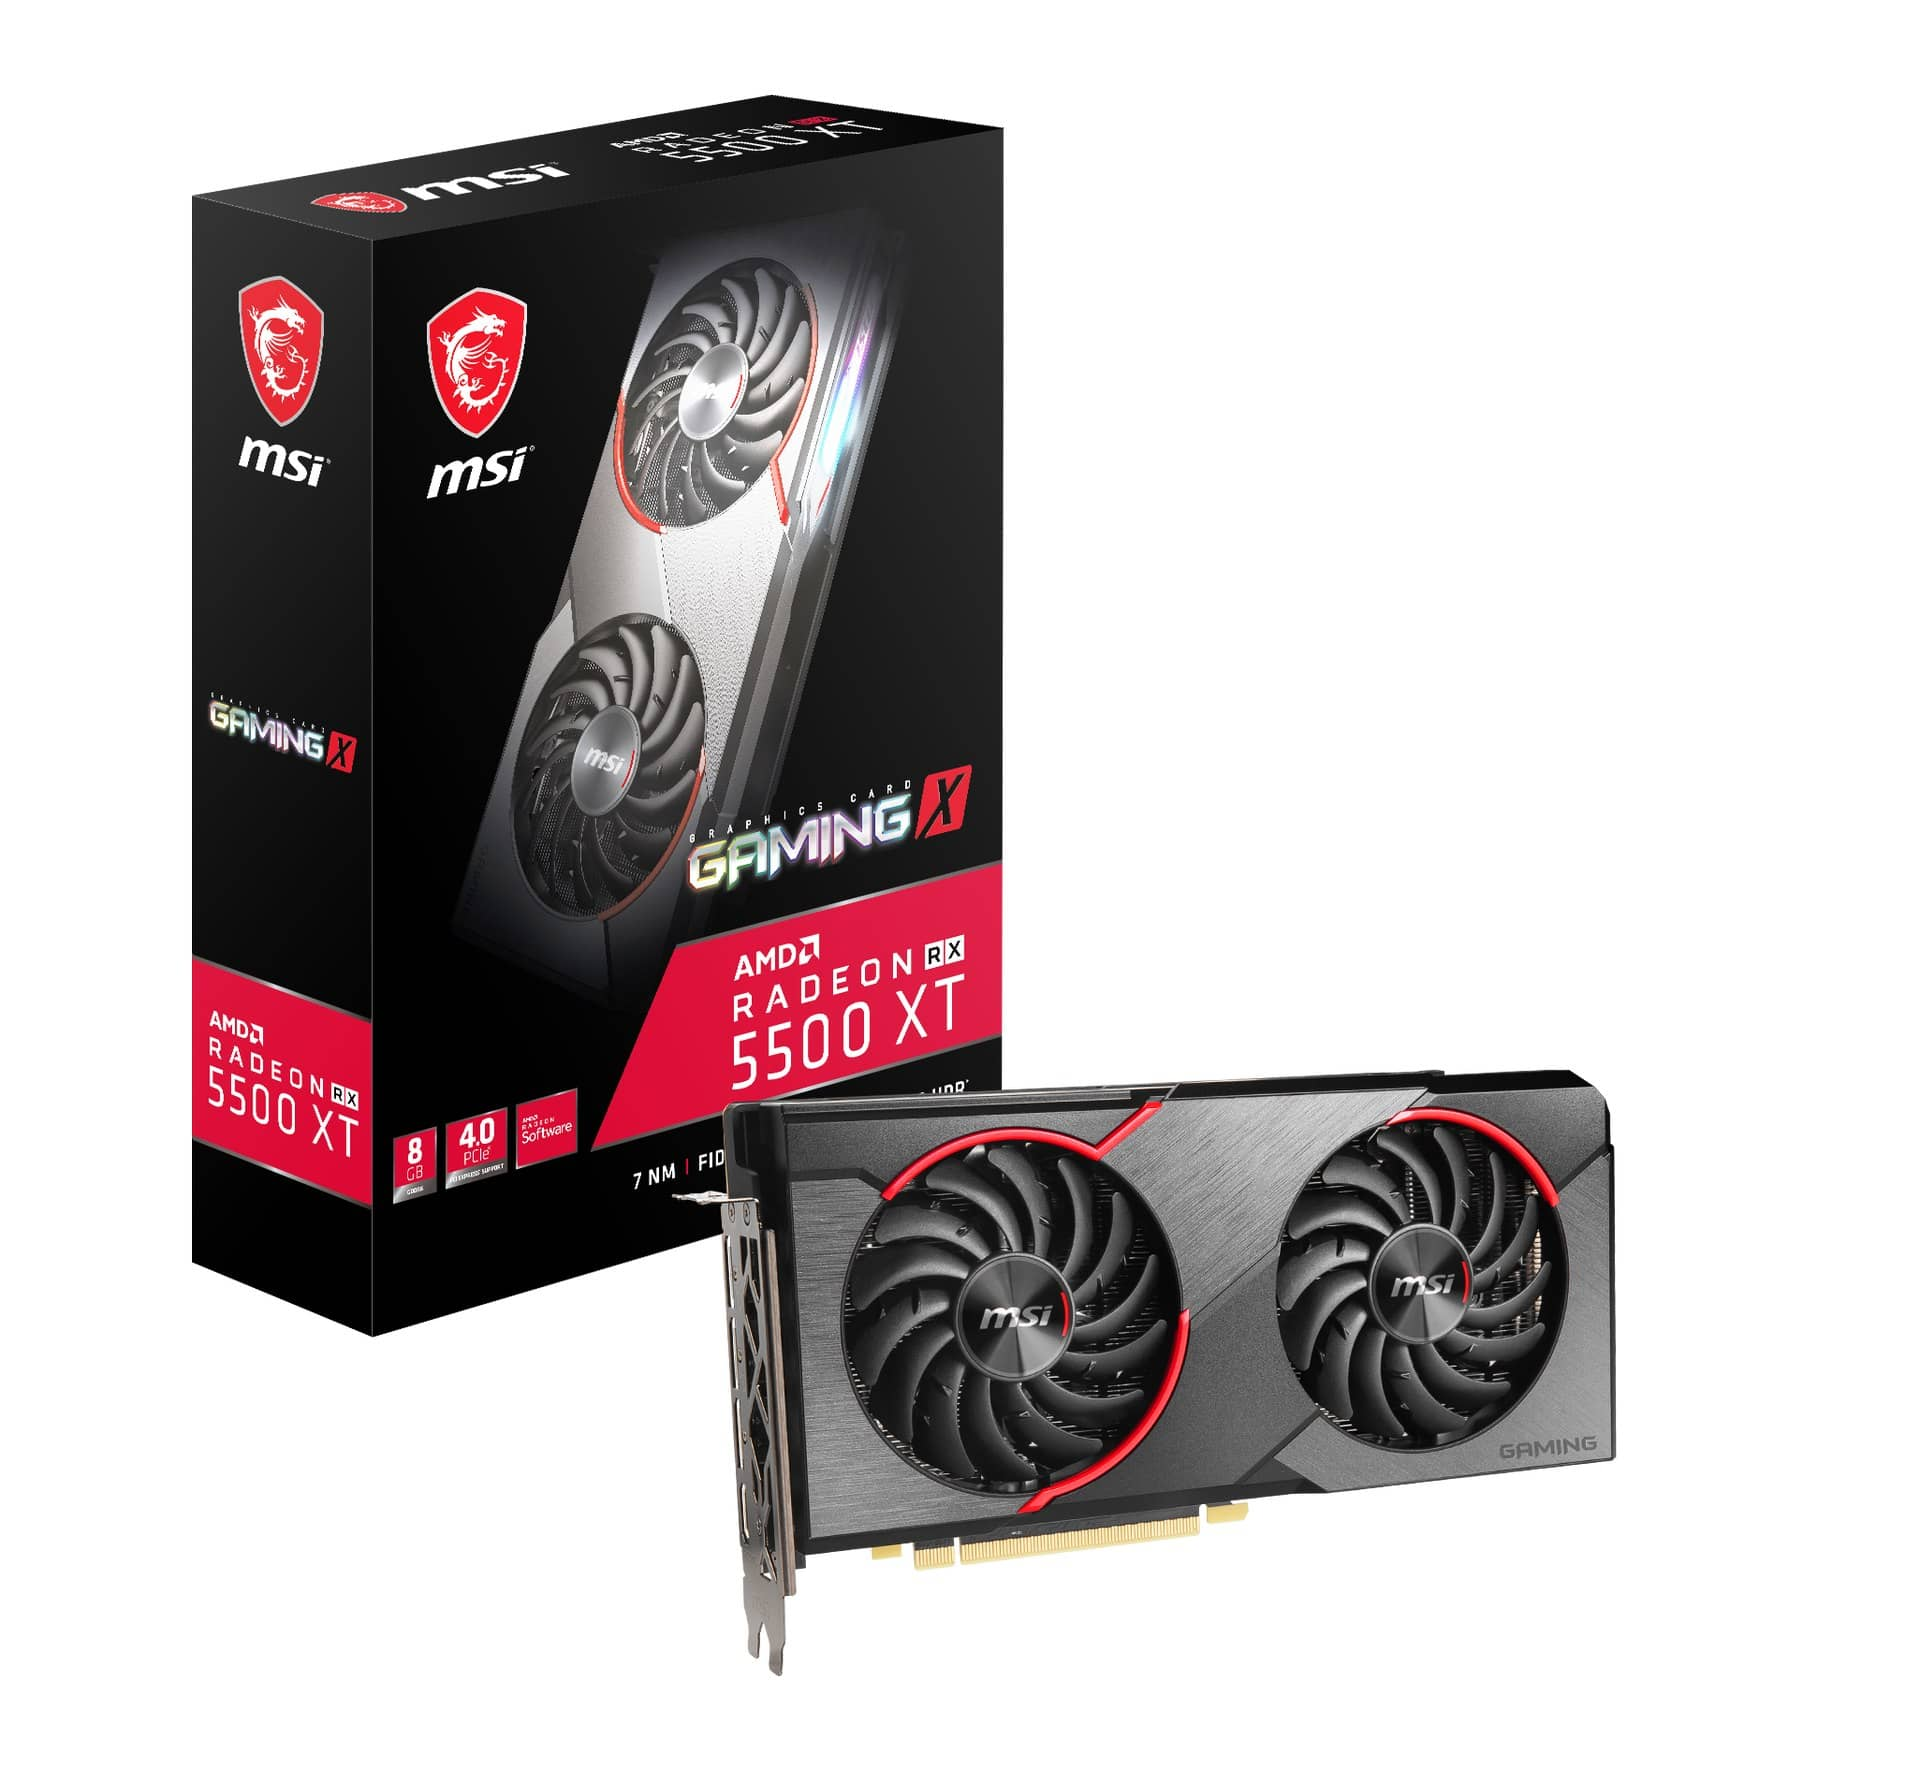 msi radeon rx 5500 xt gaming x 8g product photo boxcard